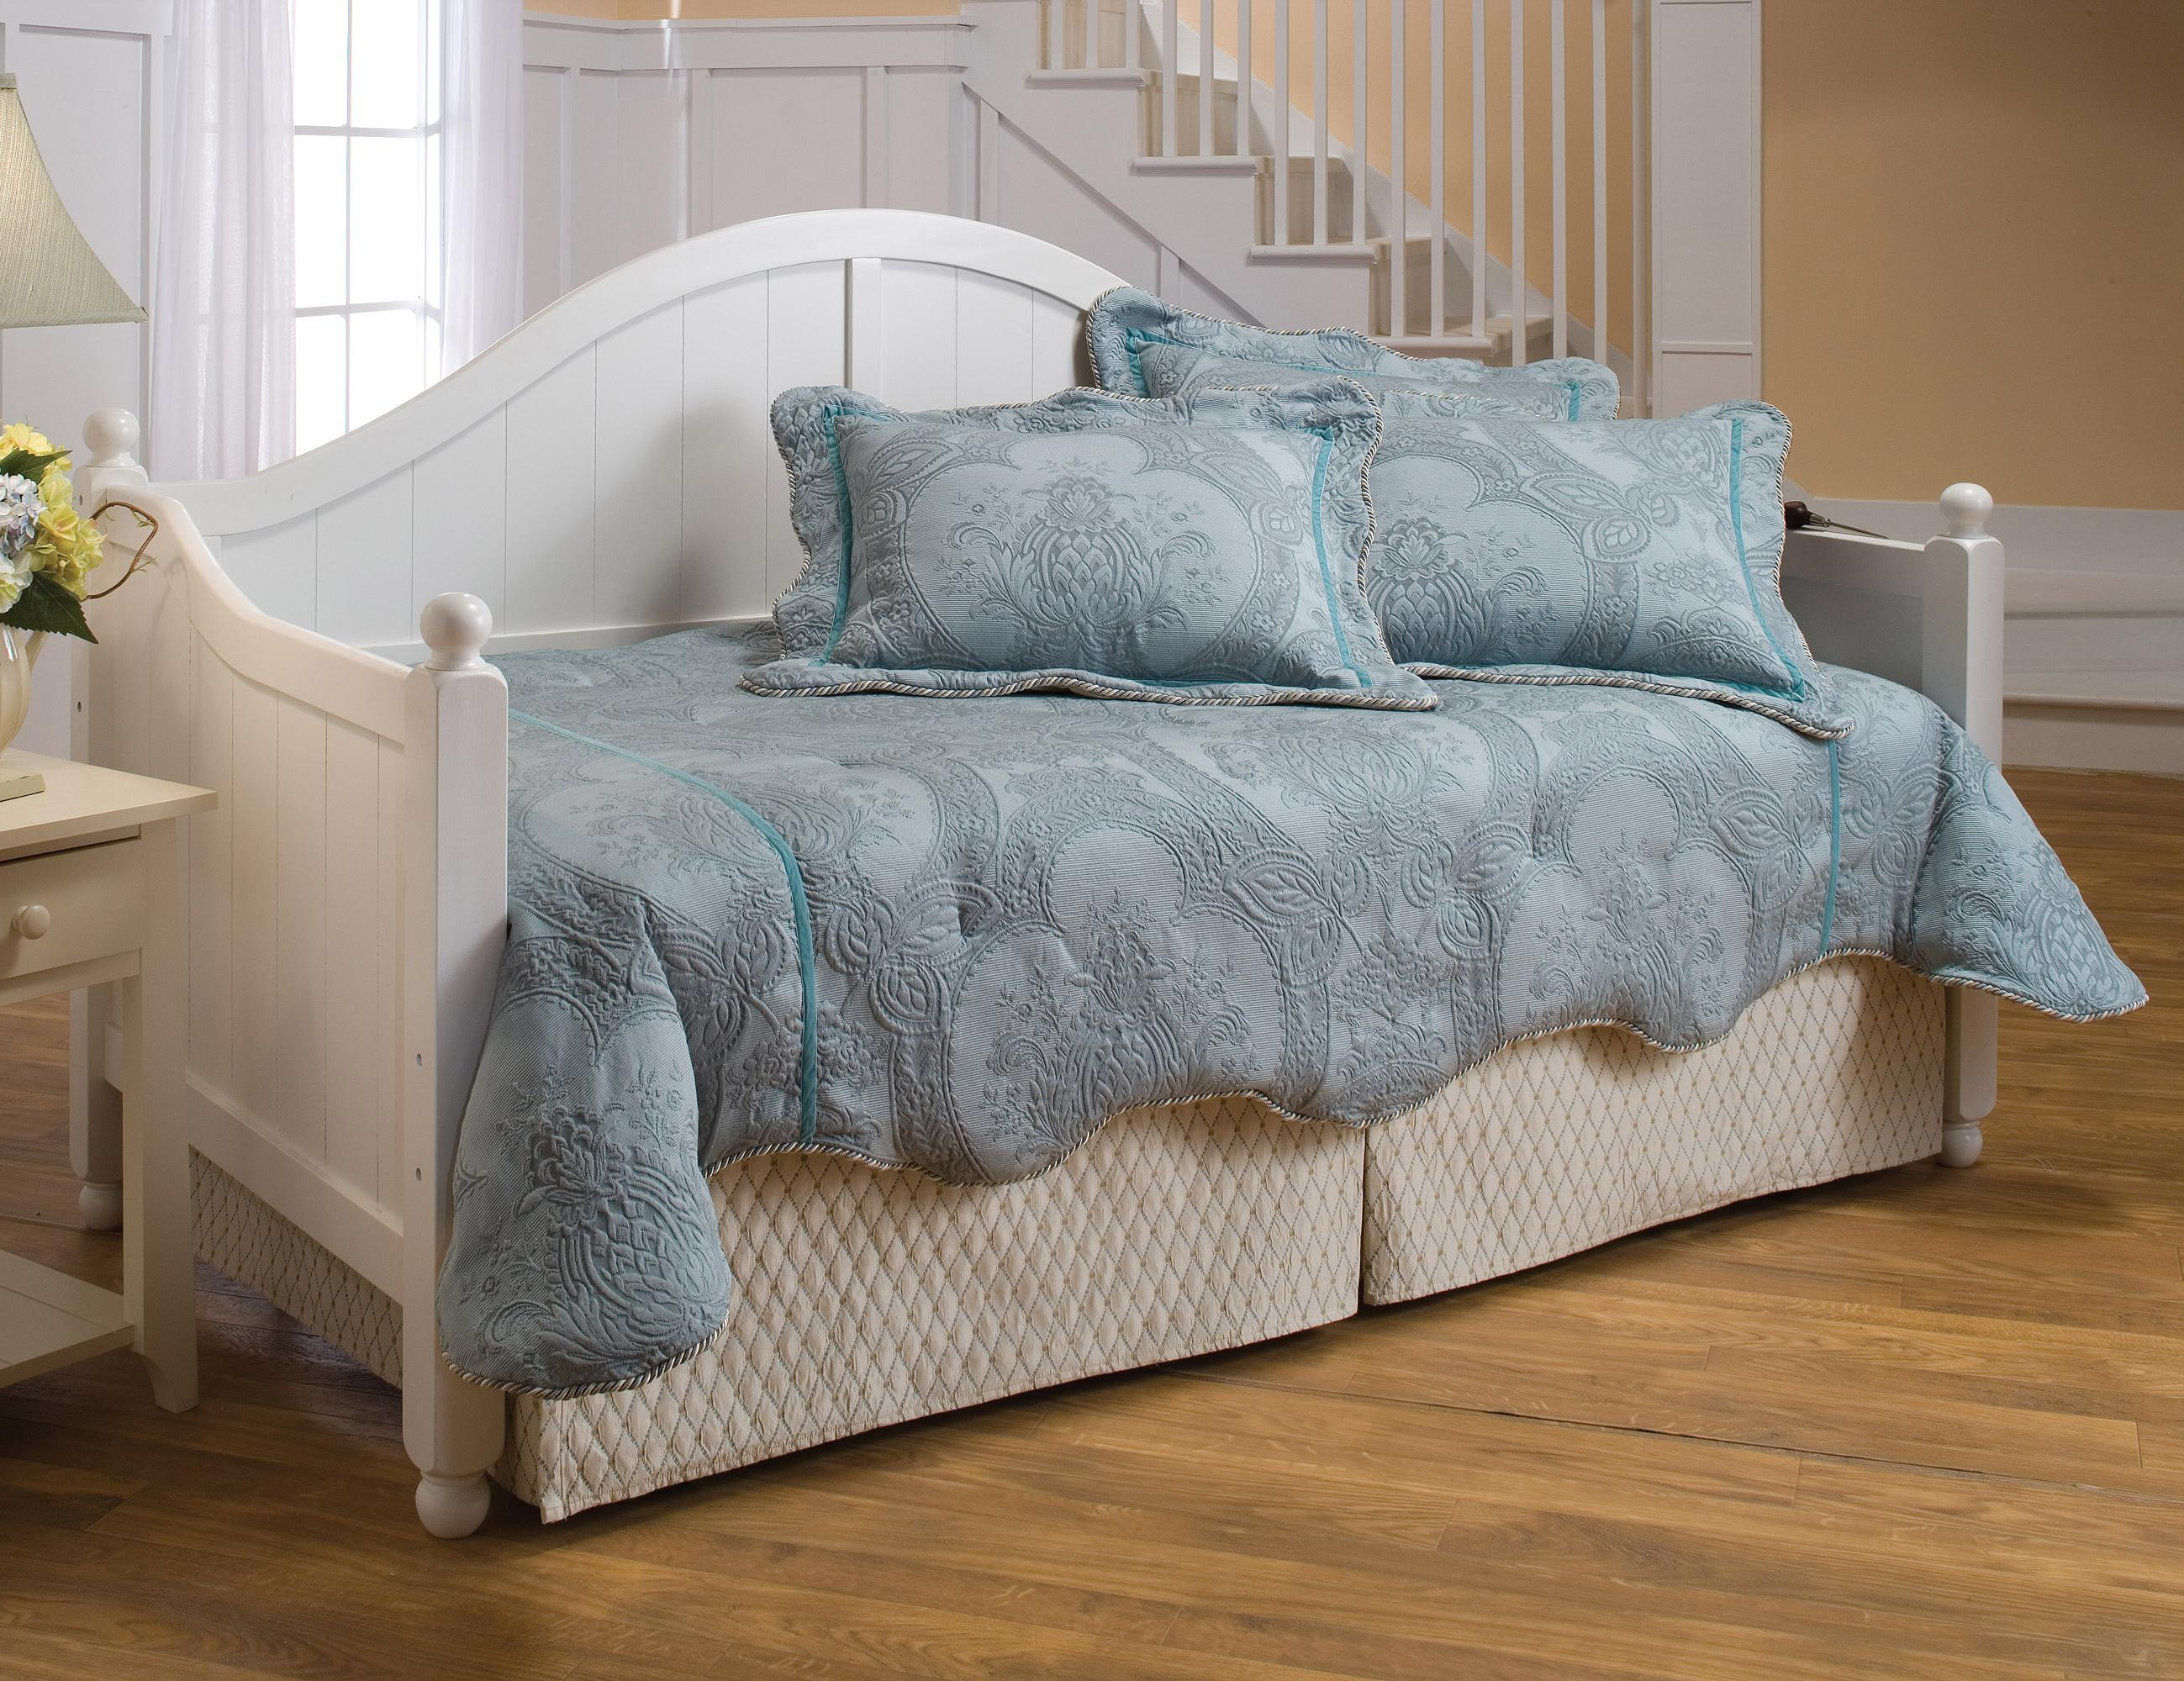 Hillsdale Daybeds Twin Augusta Daybed - Item Number: 1434DBLH